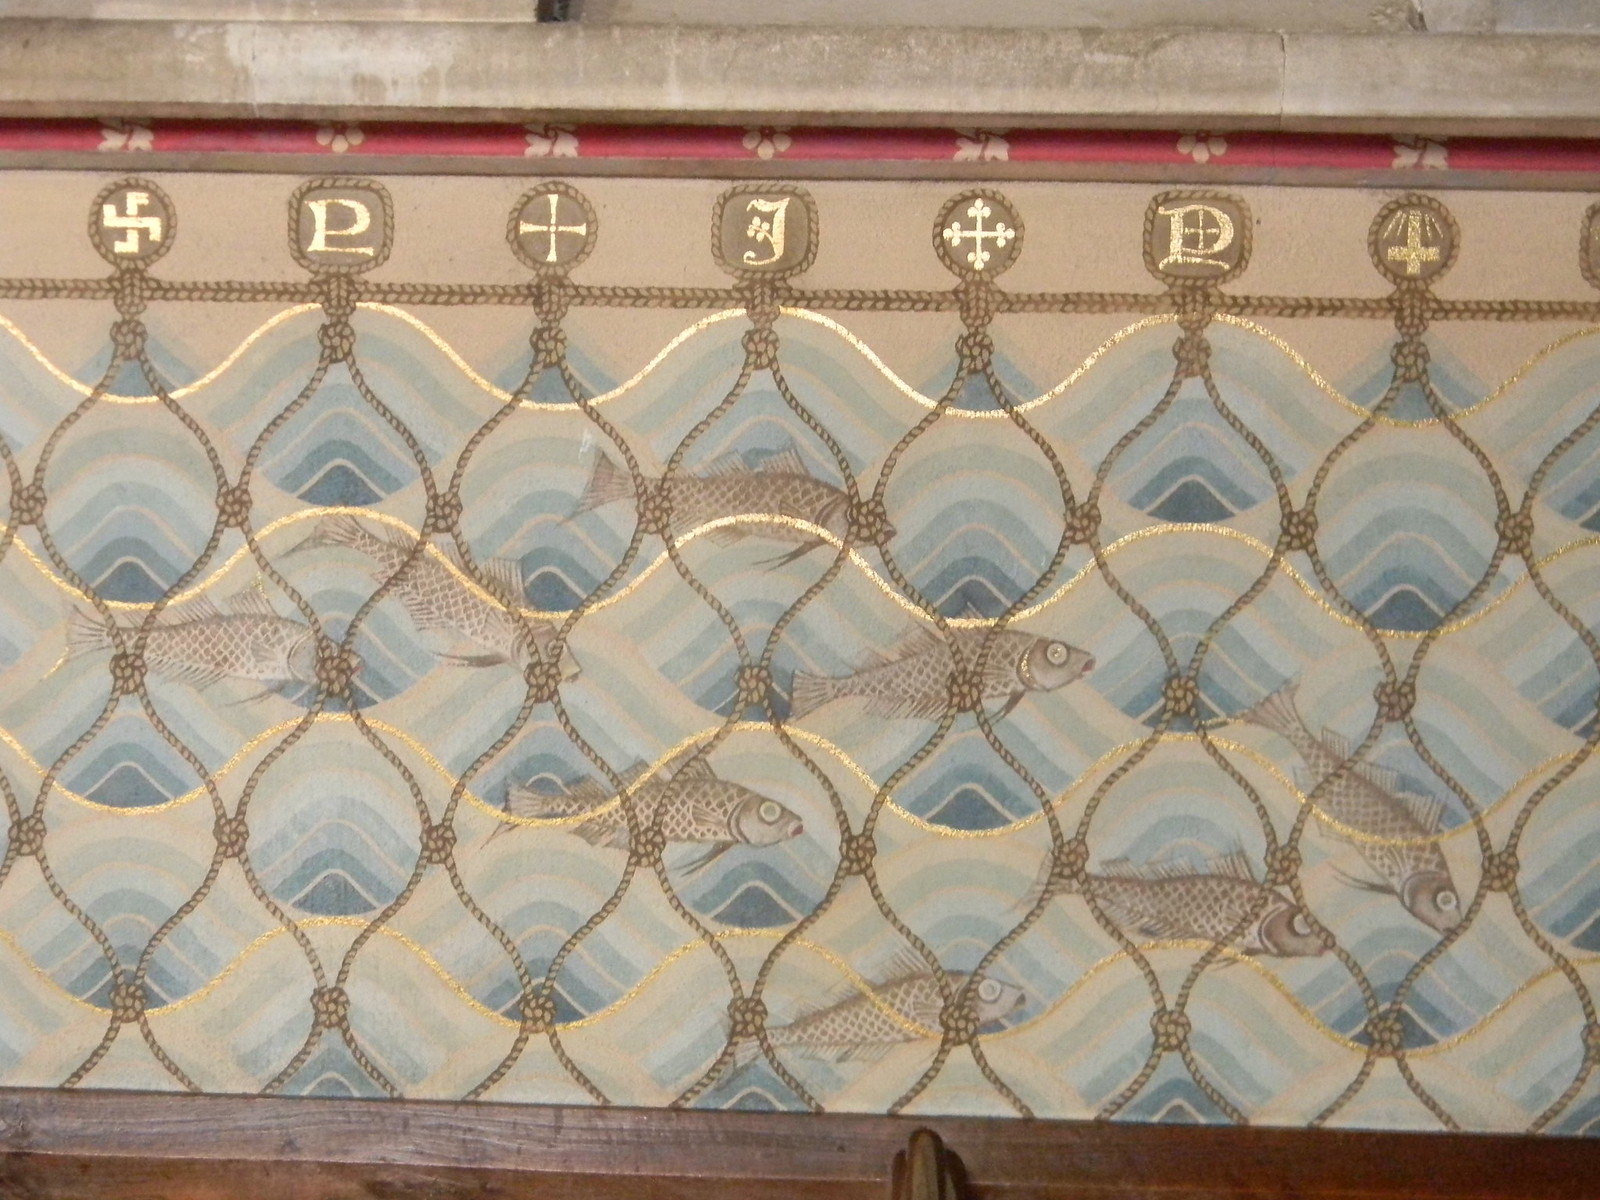 Interior, Hascombe Church Milford to Godalming This fishy frieze stretches round three sides.